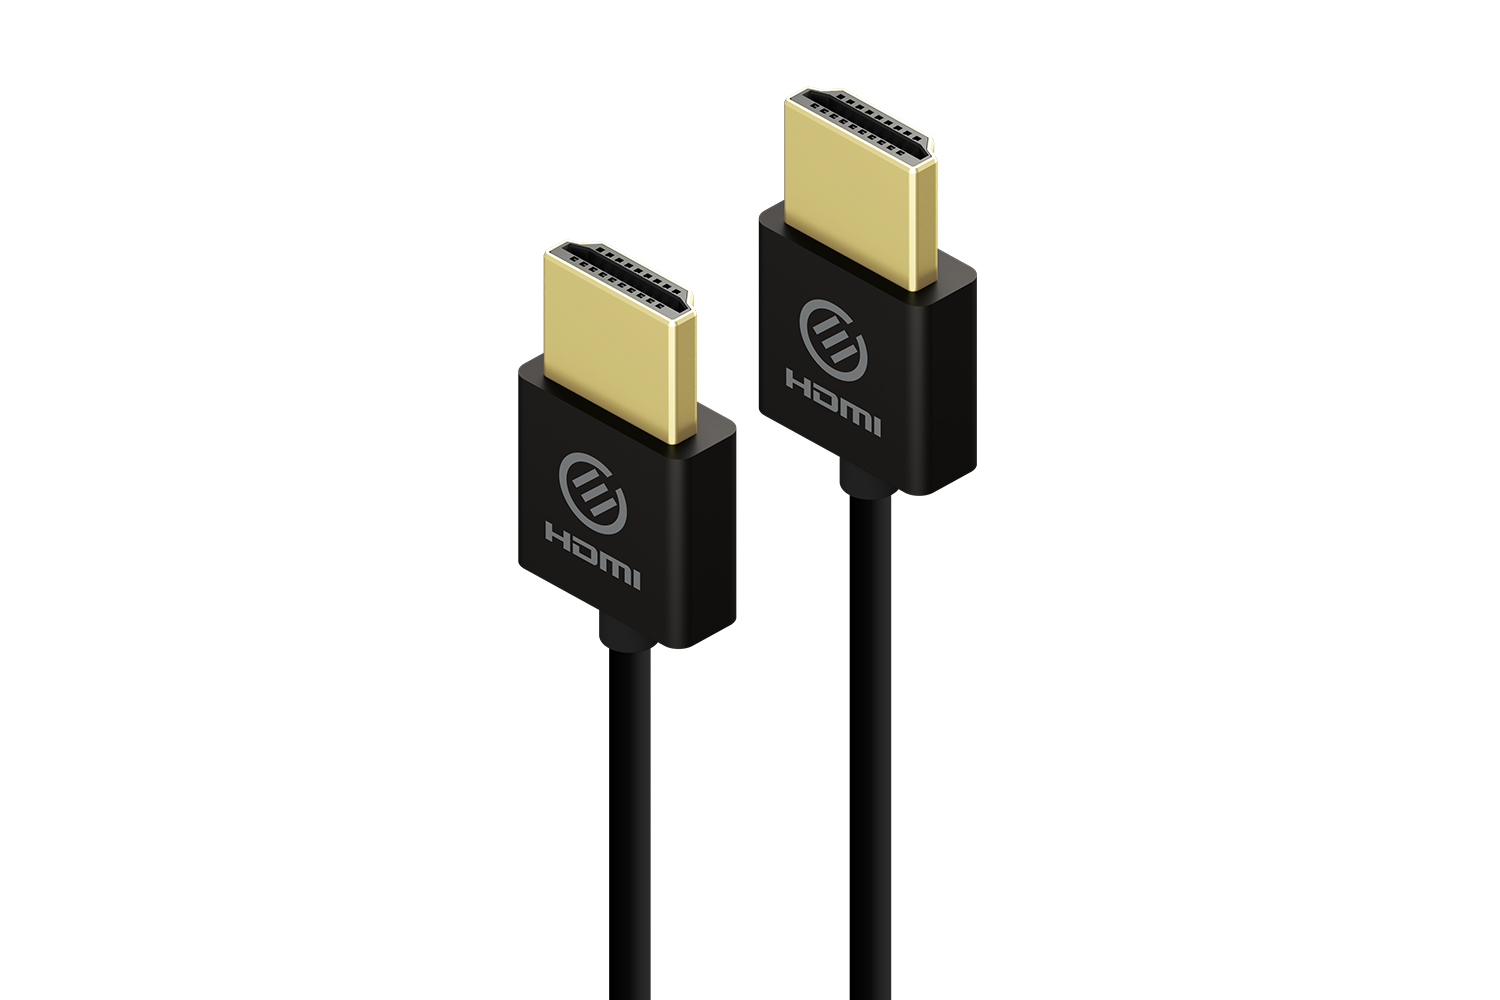 ALOGIC Super Slim & Flexible HDMI Cable with Ethernet Ver 2.0b - Air Series - 3m